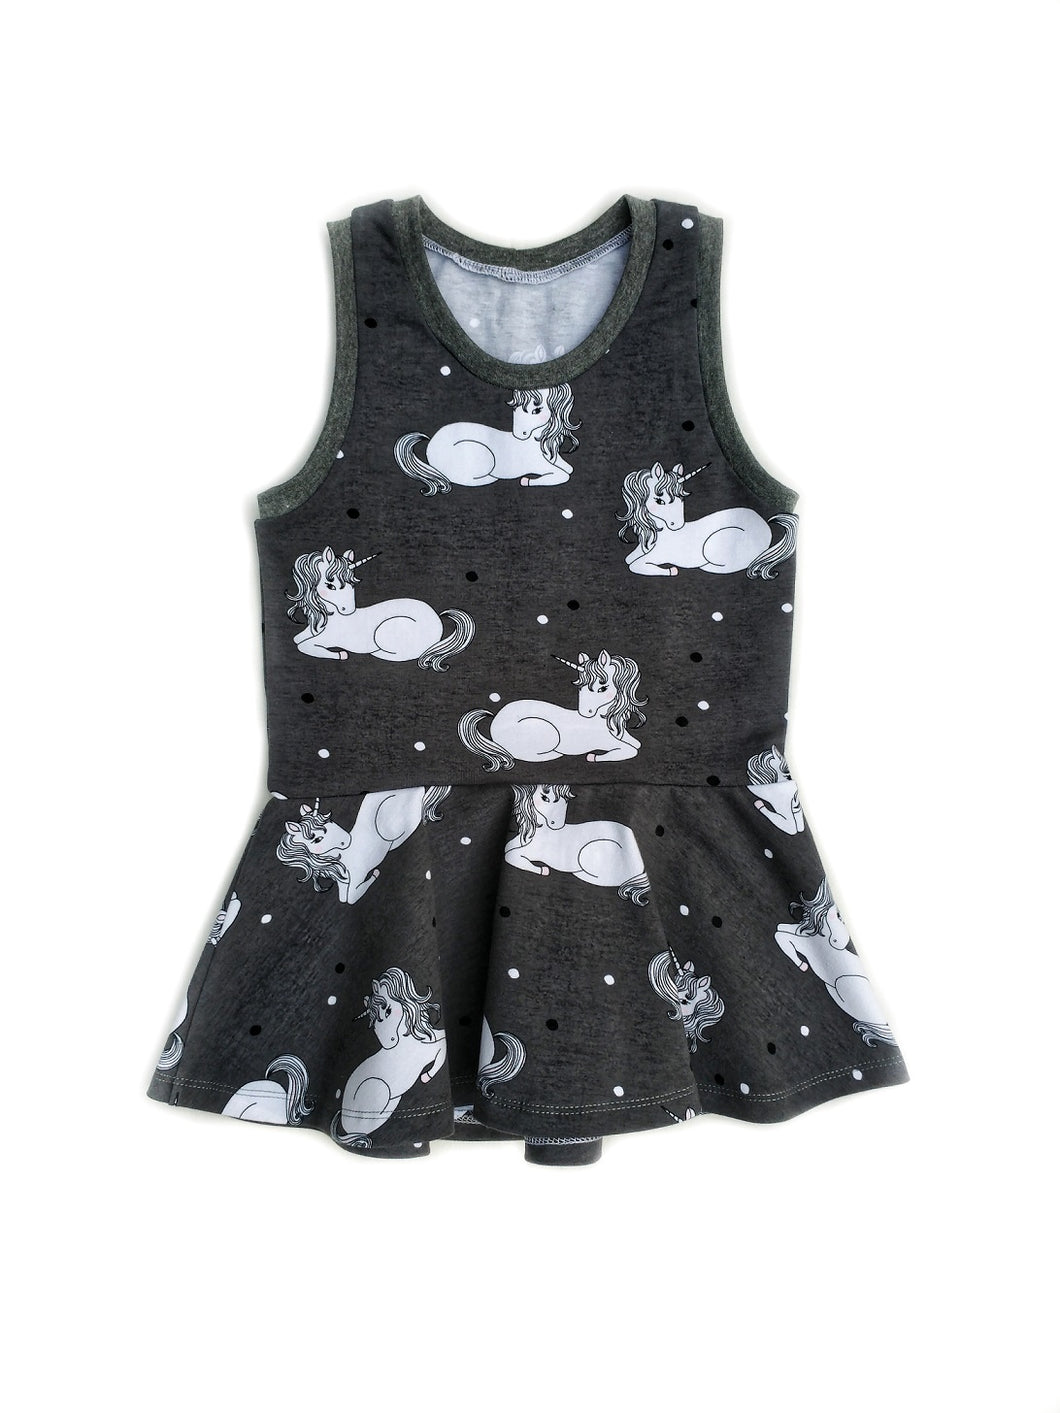 Carefree Peplum Top - Unicorns on Grey, sizes 2T - 8